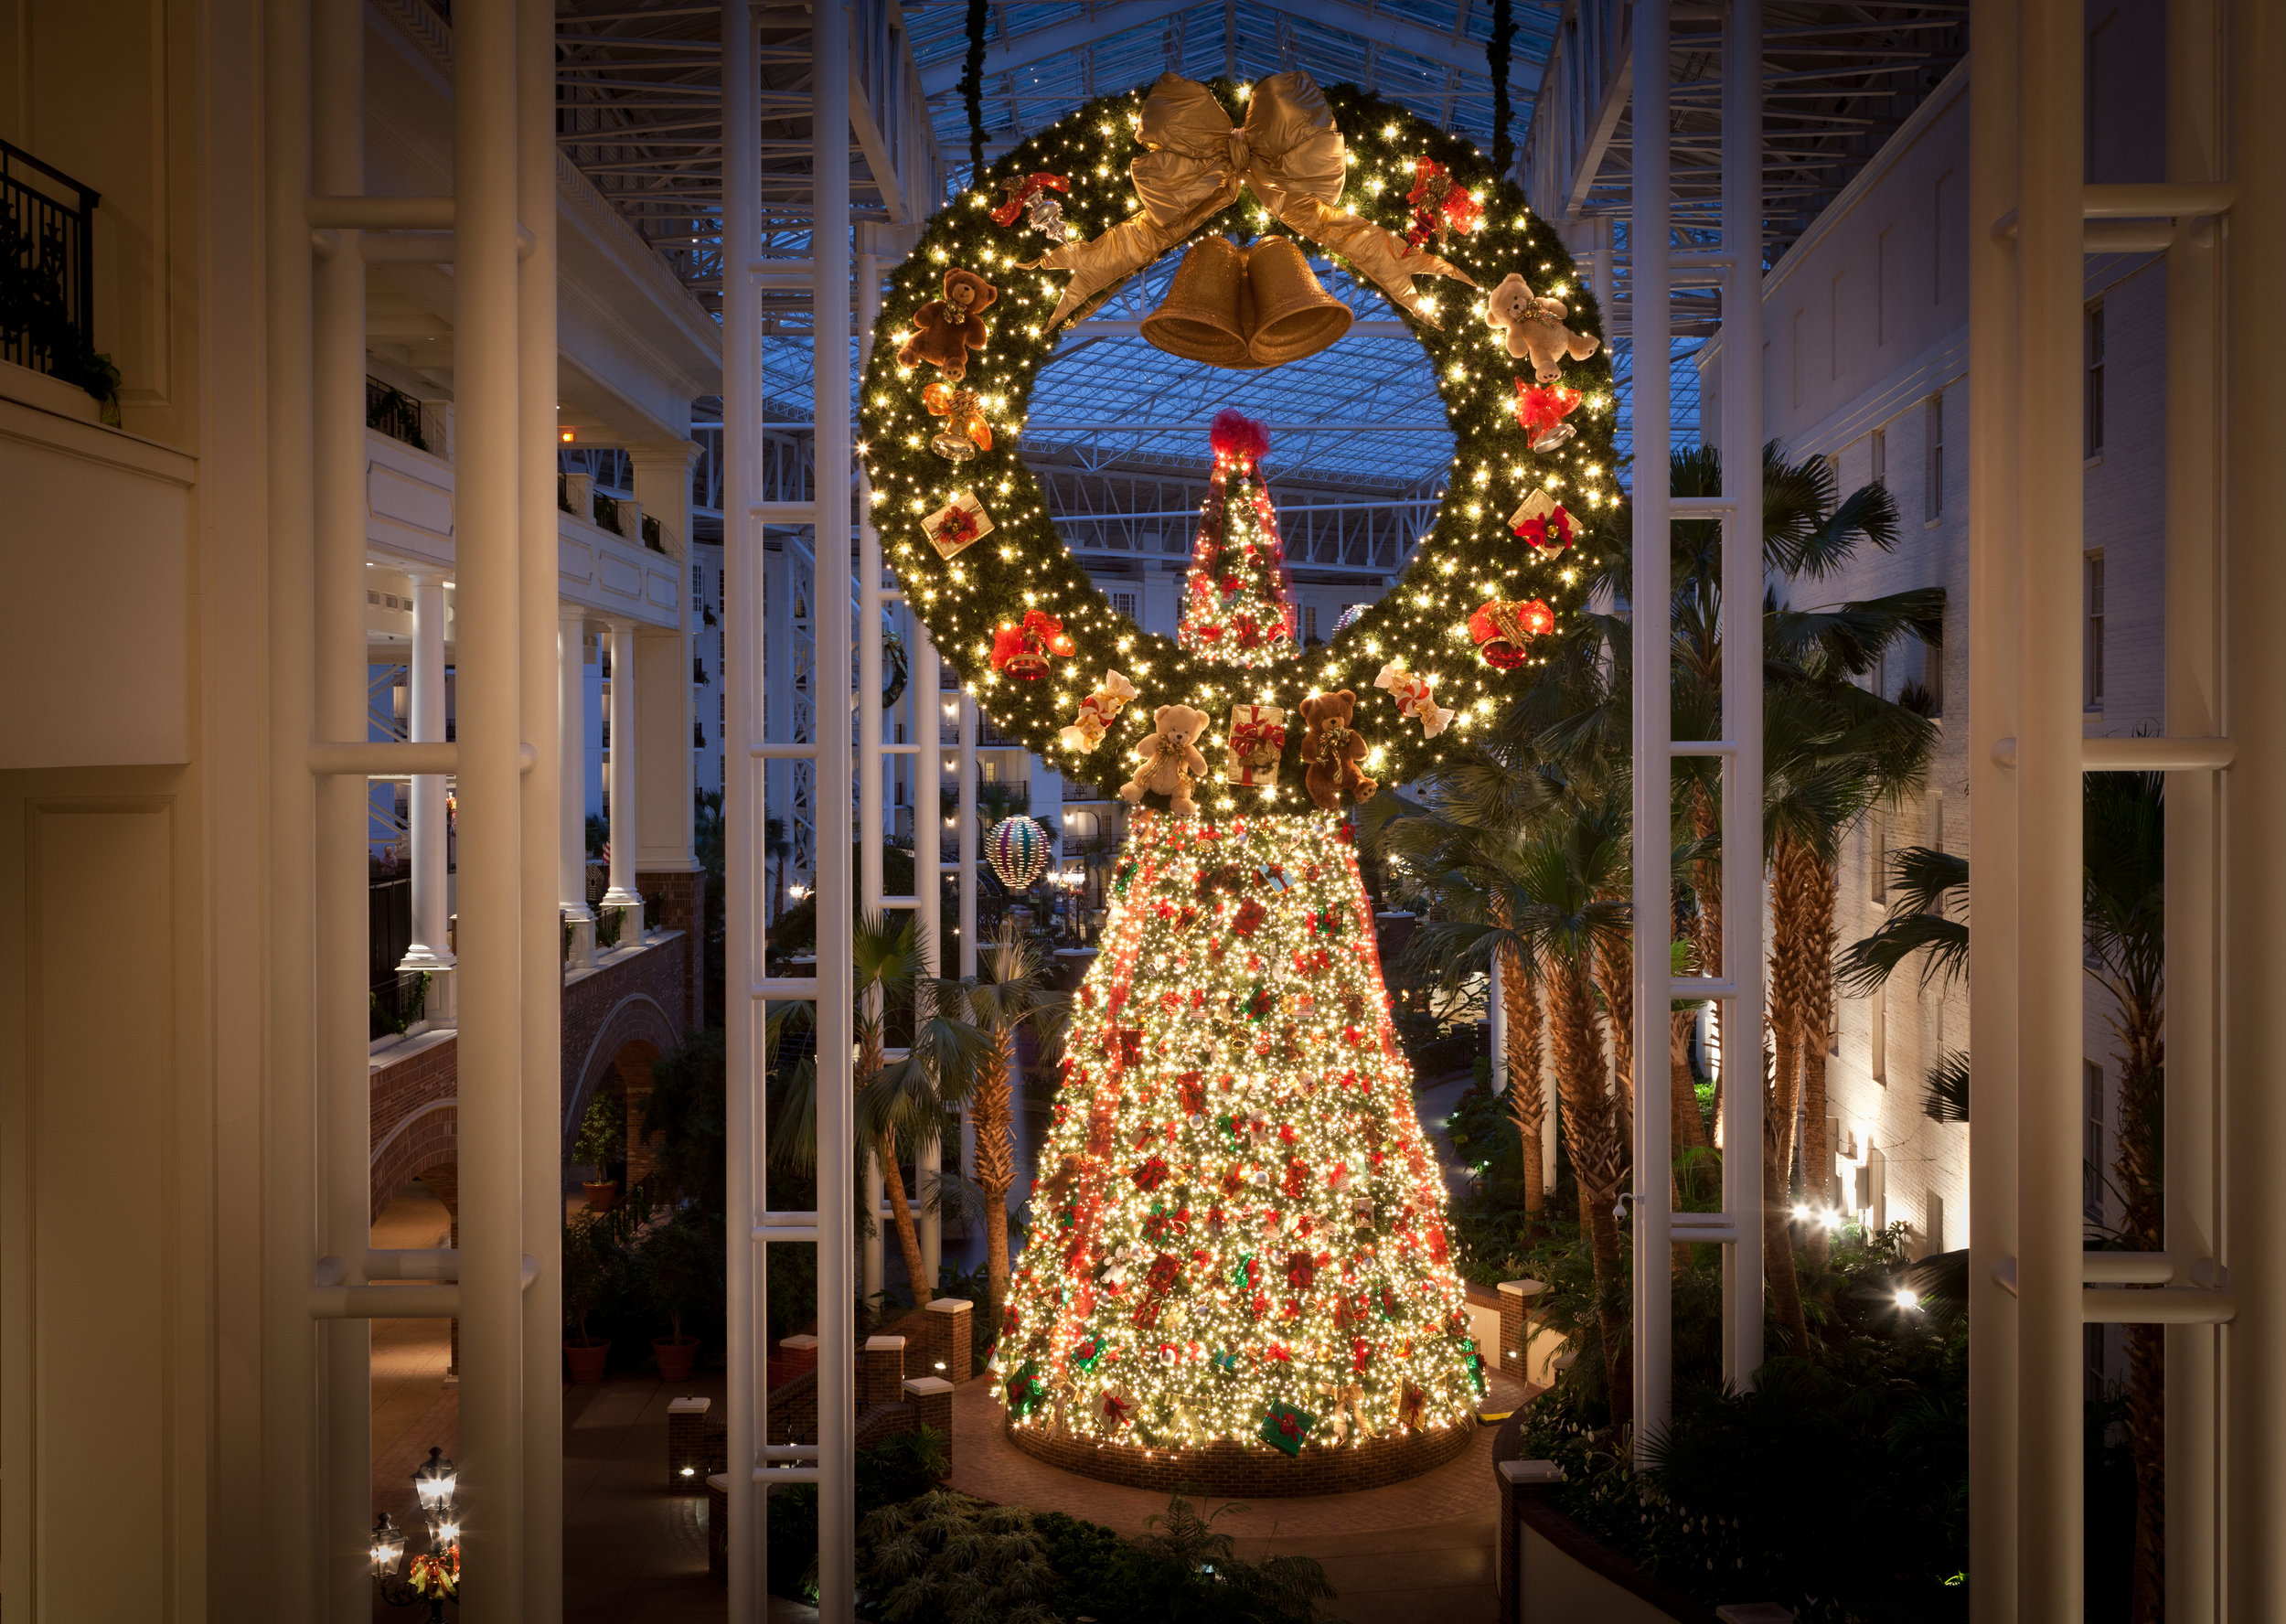 Photo Courtesy of the Gaylord Opryland Hotel